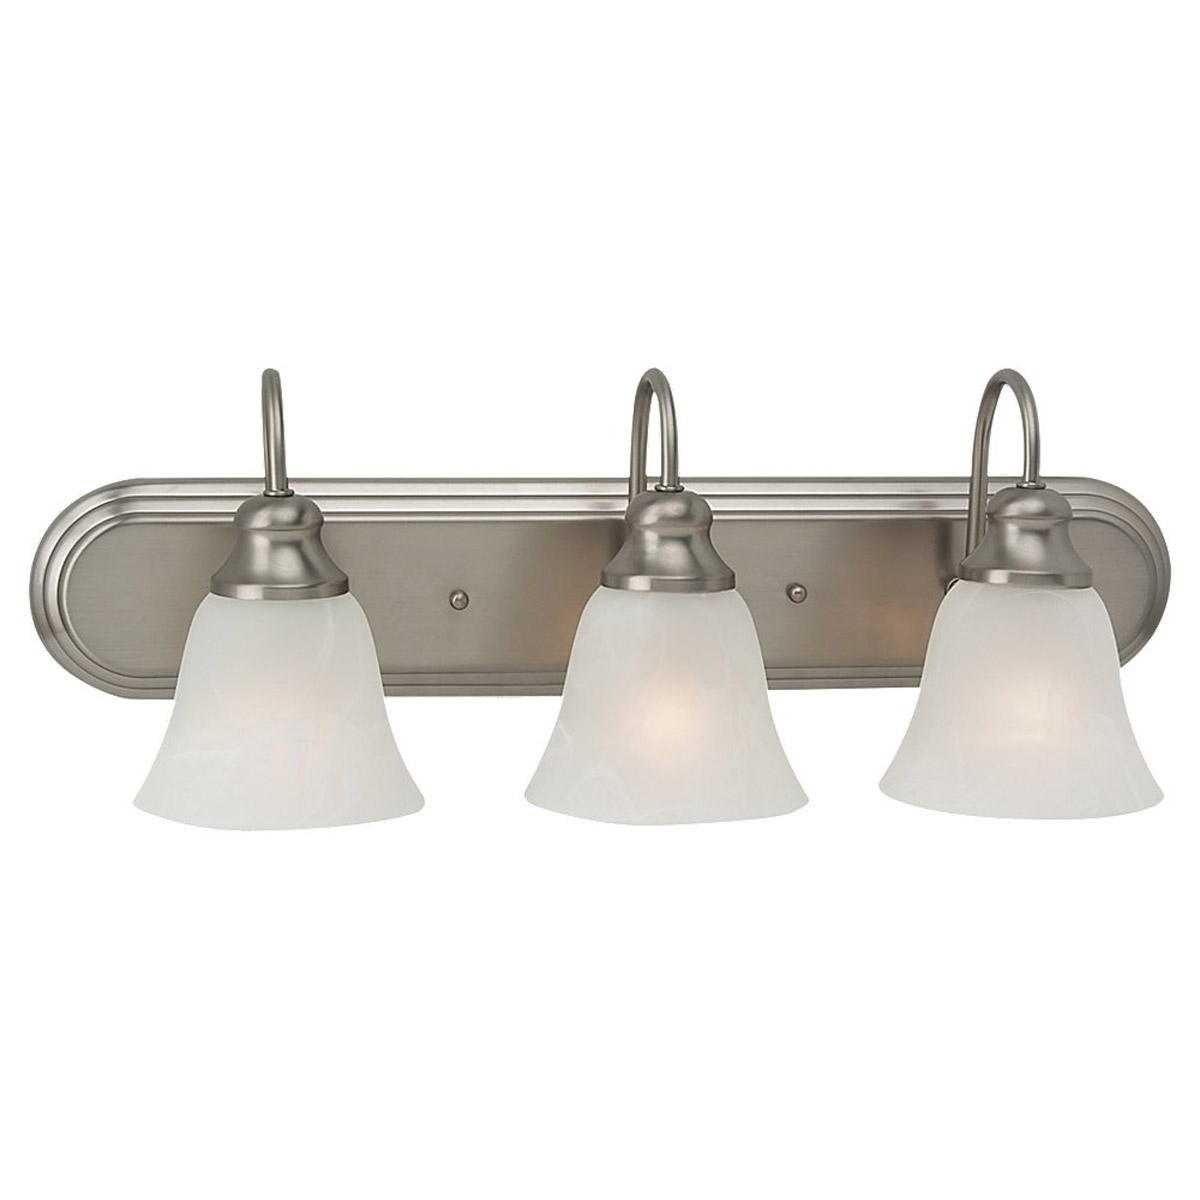 Sea Gull Lighting Windgate 3 Light Bath Vanity in Brushed Nickel 44941BLE-962